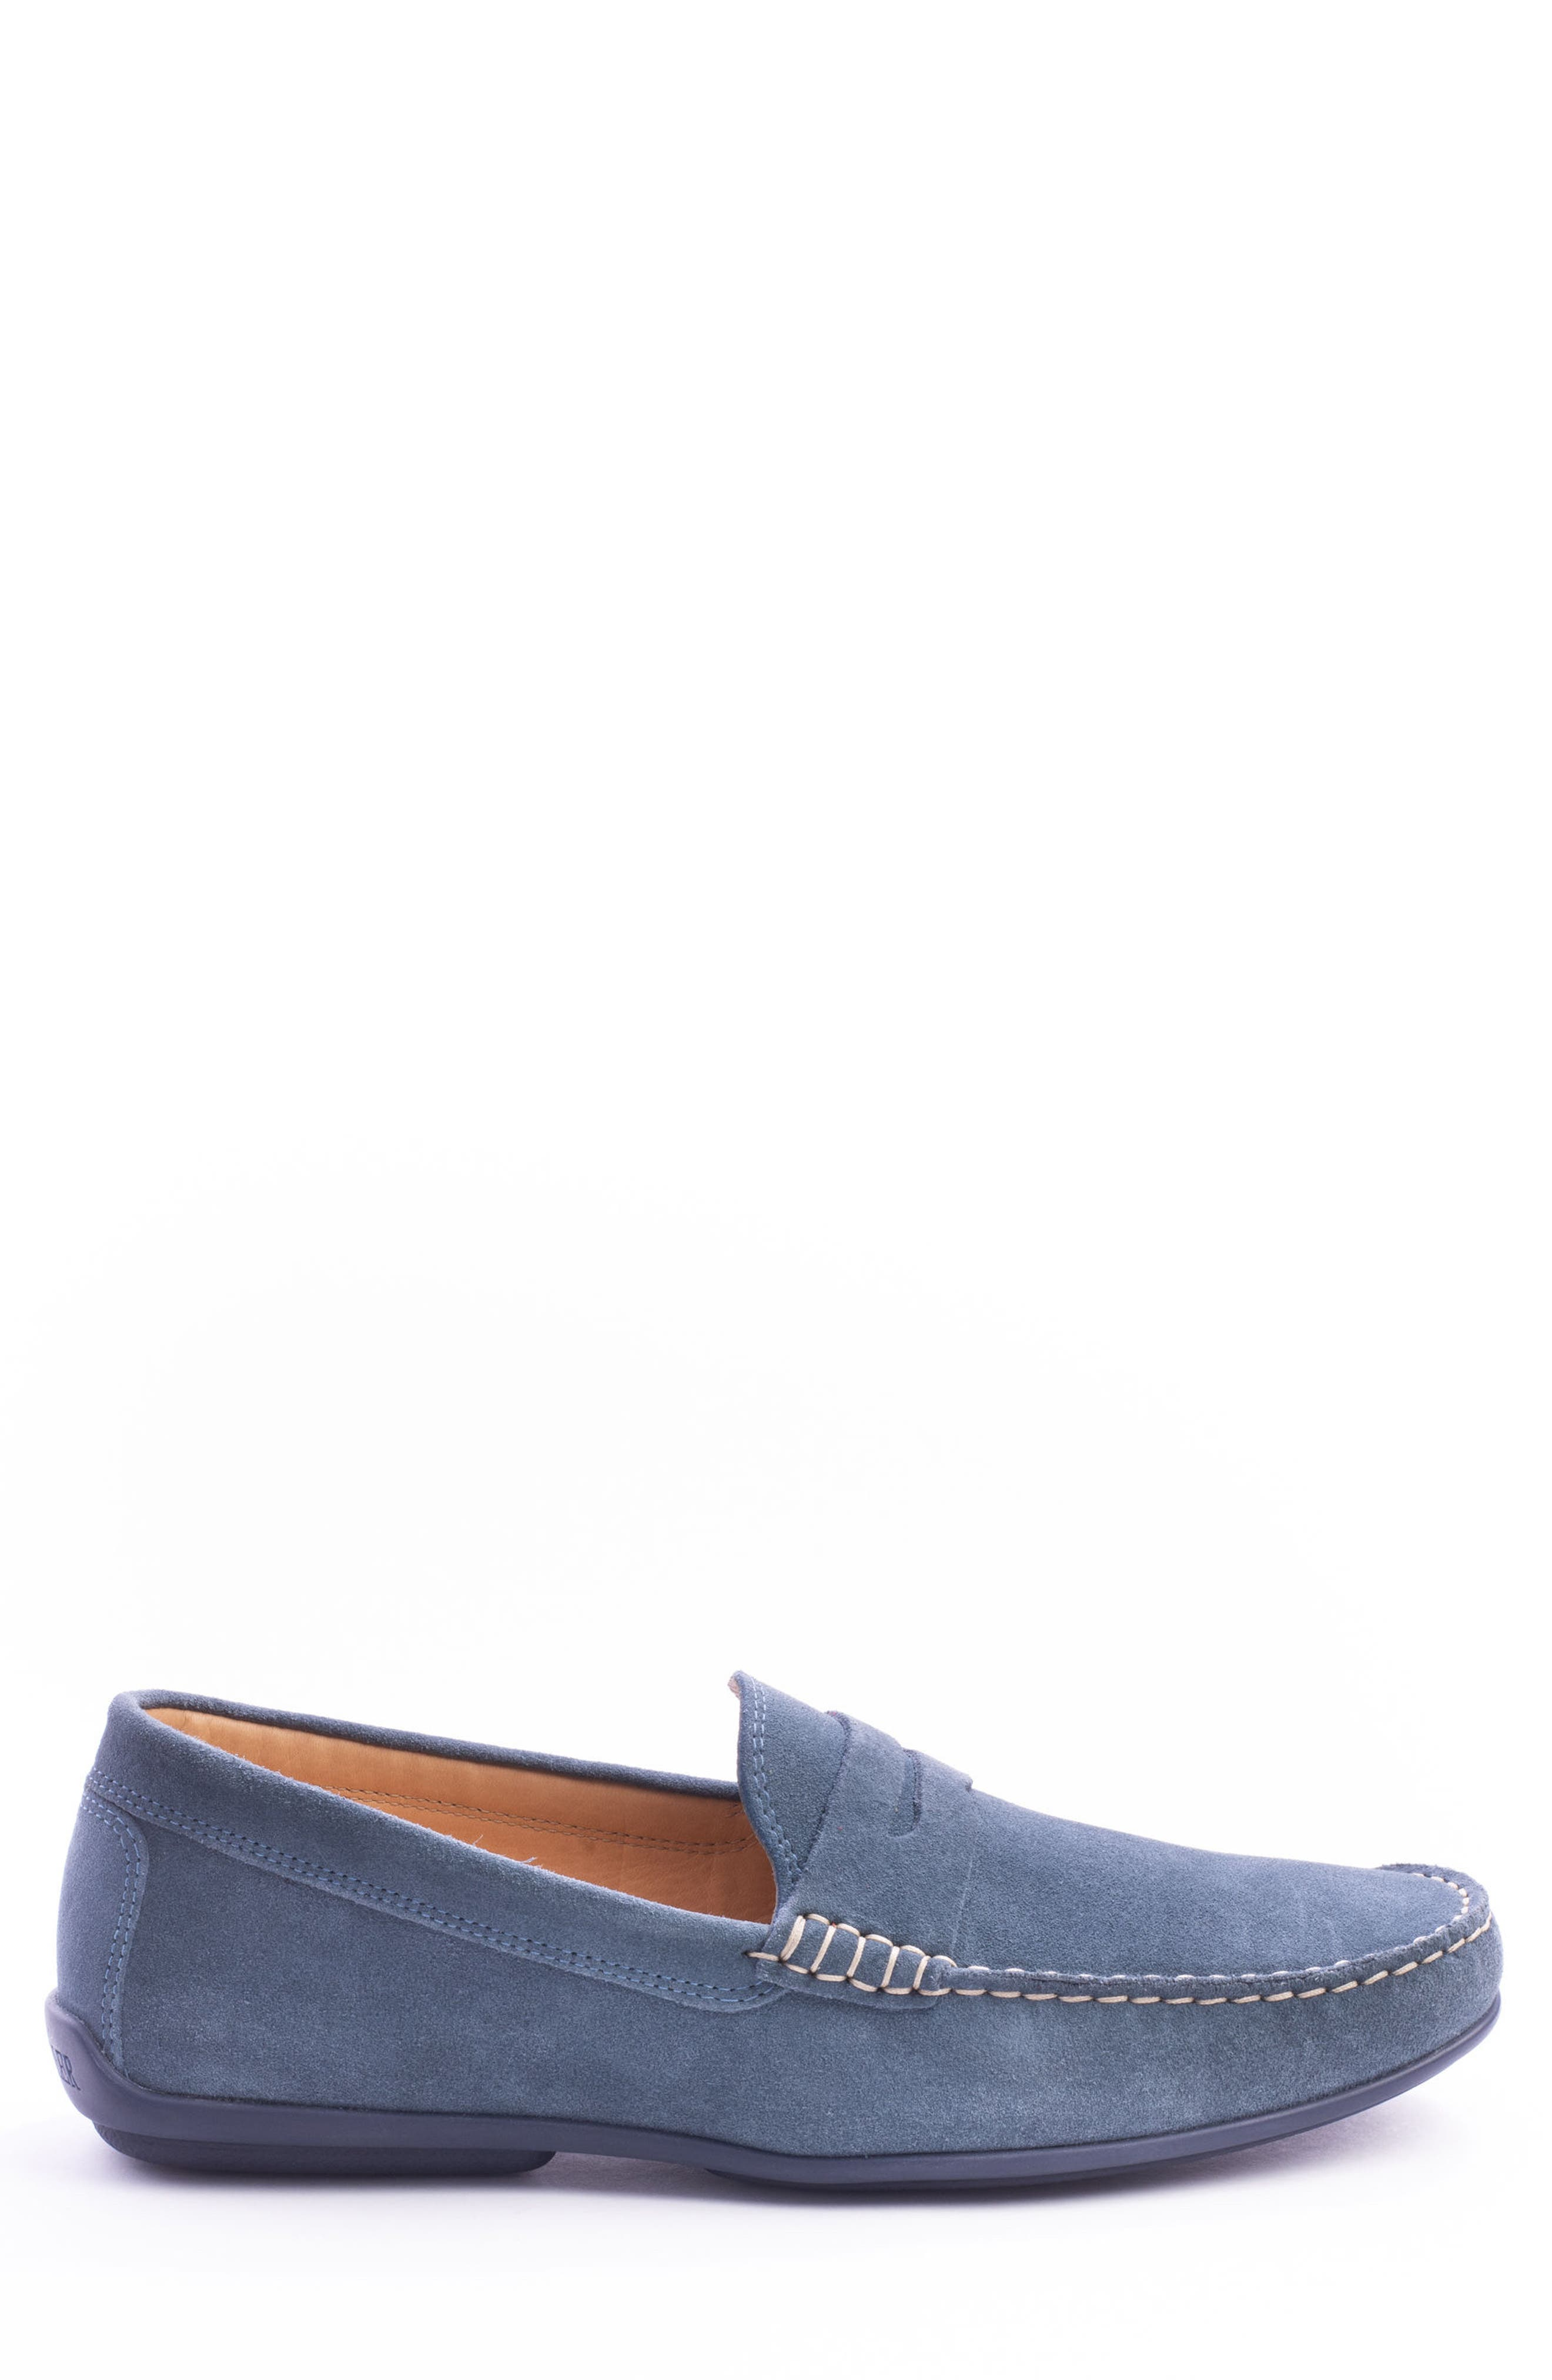 'Parkers' Penny Loafer,                             Alternate thumbnail 3, color,                             Indigo